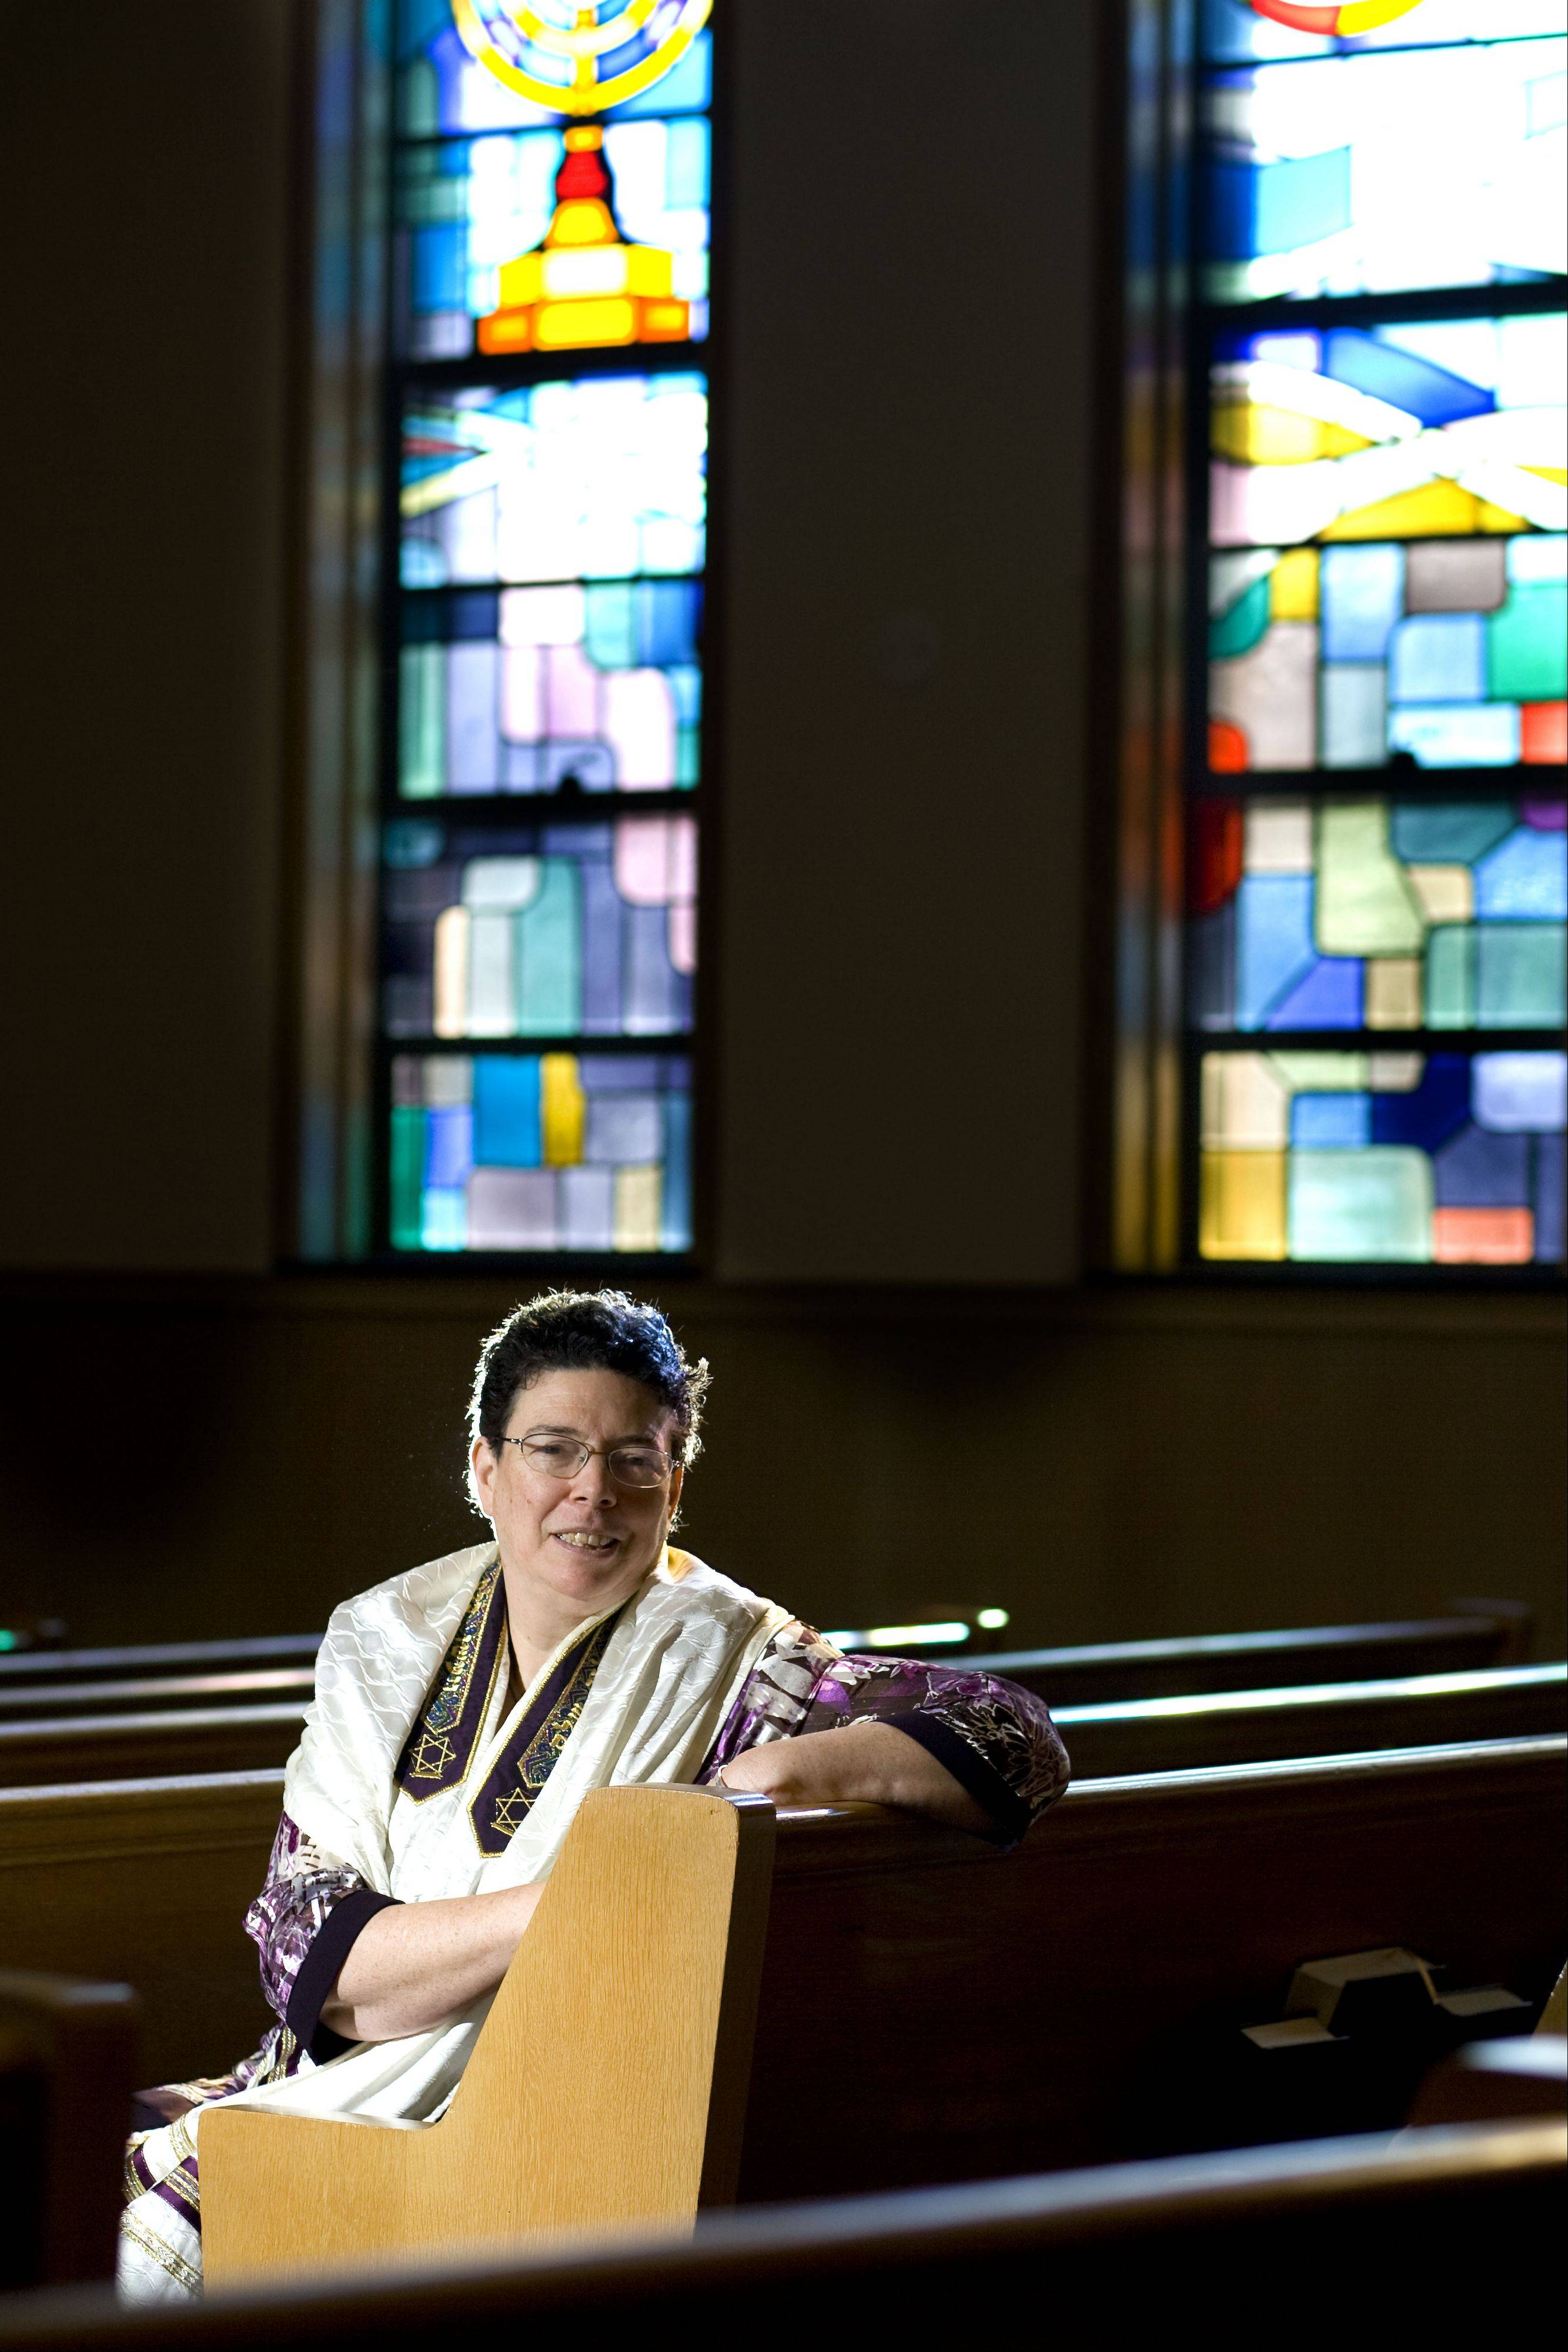 Rabbi Margaret Frisch Klein of Congregation Kneseth Israel of Elgin will leading the way for the congregation as they celebrate their 120th anniversary this year. Festivities include an appearance by comedian Robert Klein at Elgin Community College this Saturday and a celebration brunch this Sunday which will feature a Klezmer Band.